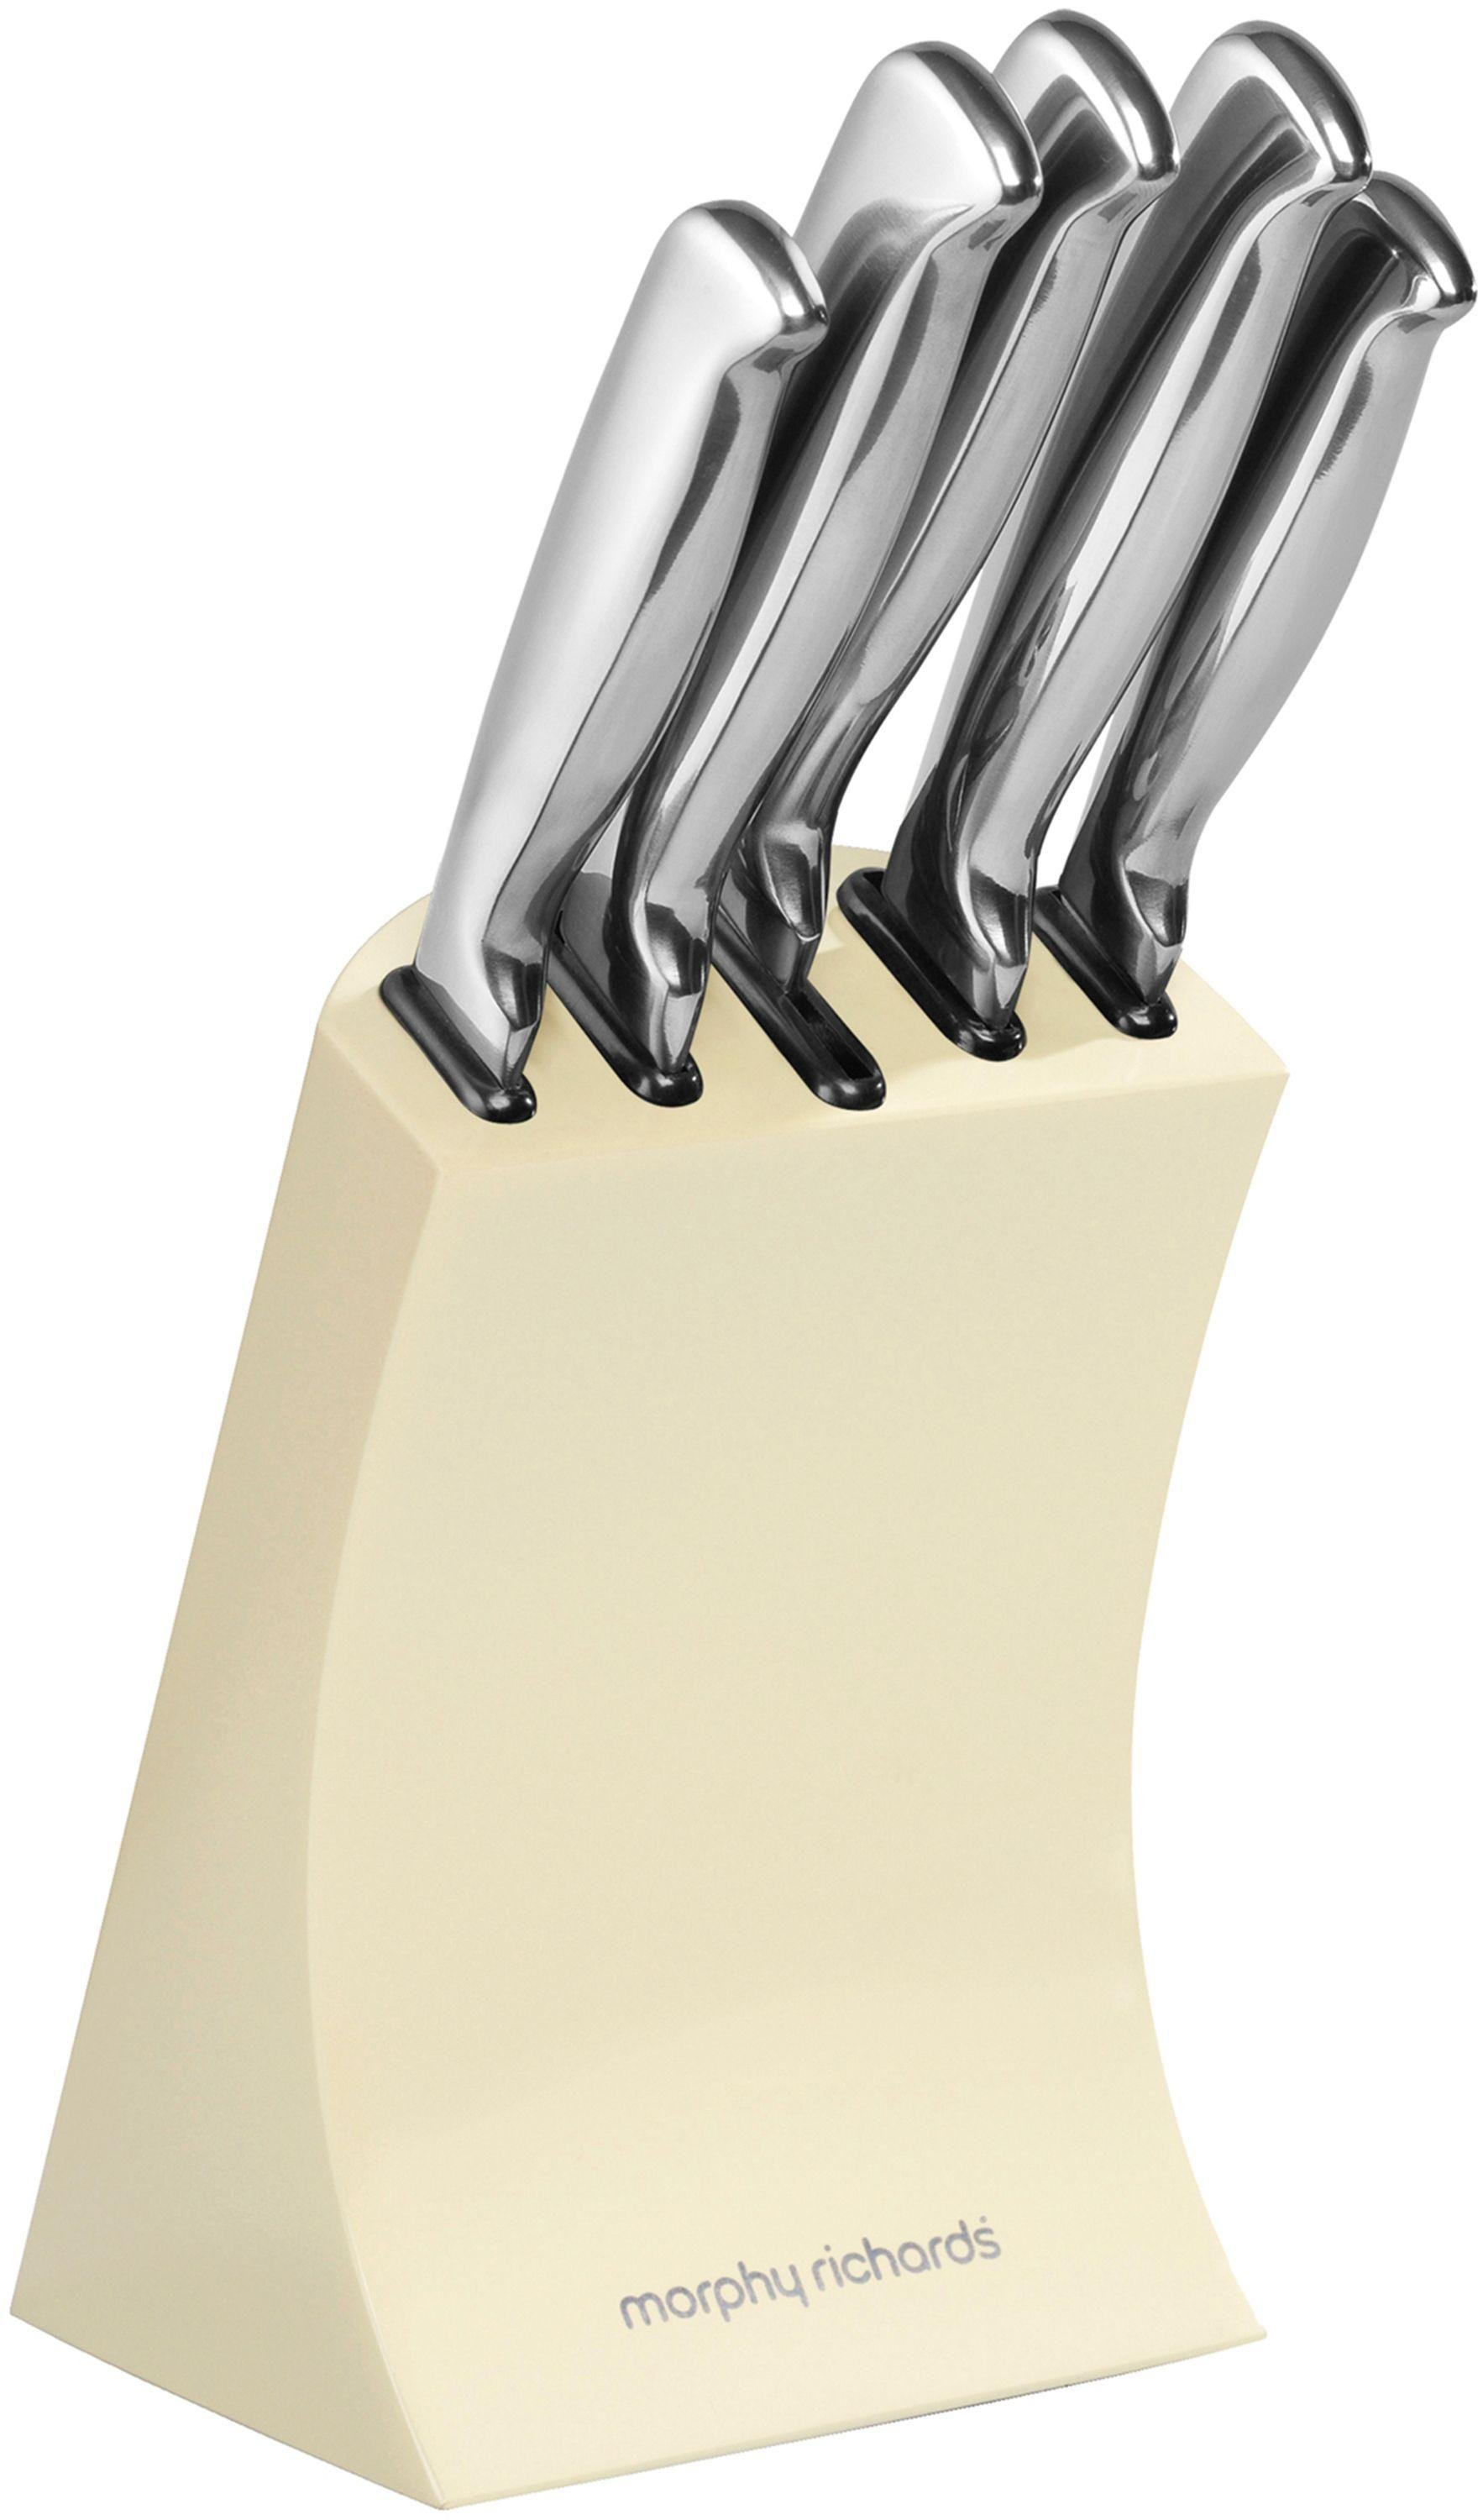 Morphy richards accents piece knife block cream